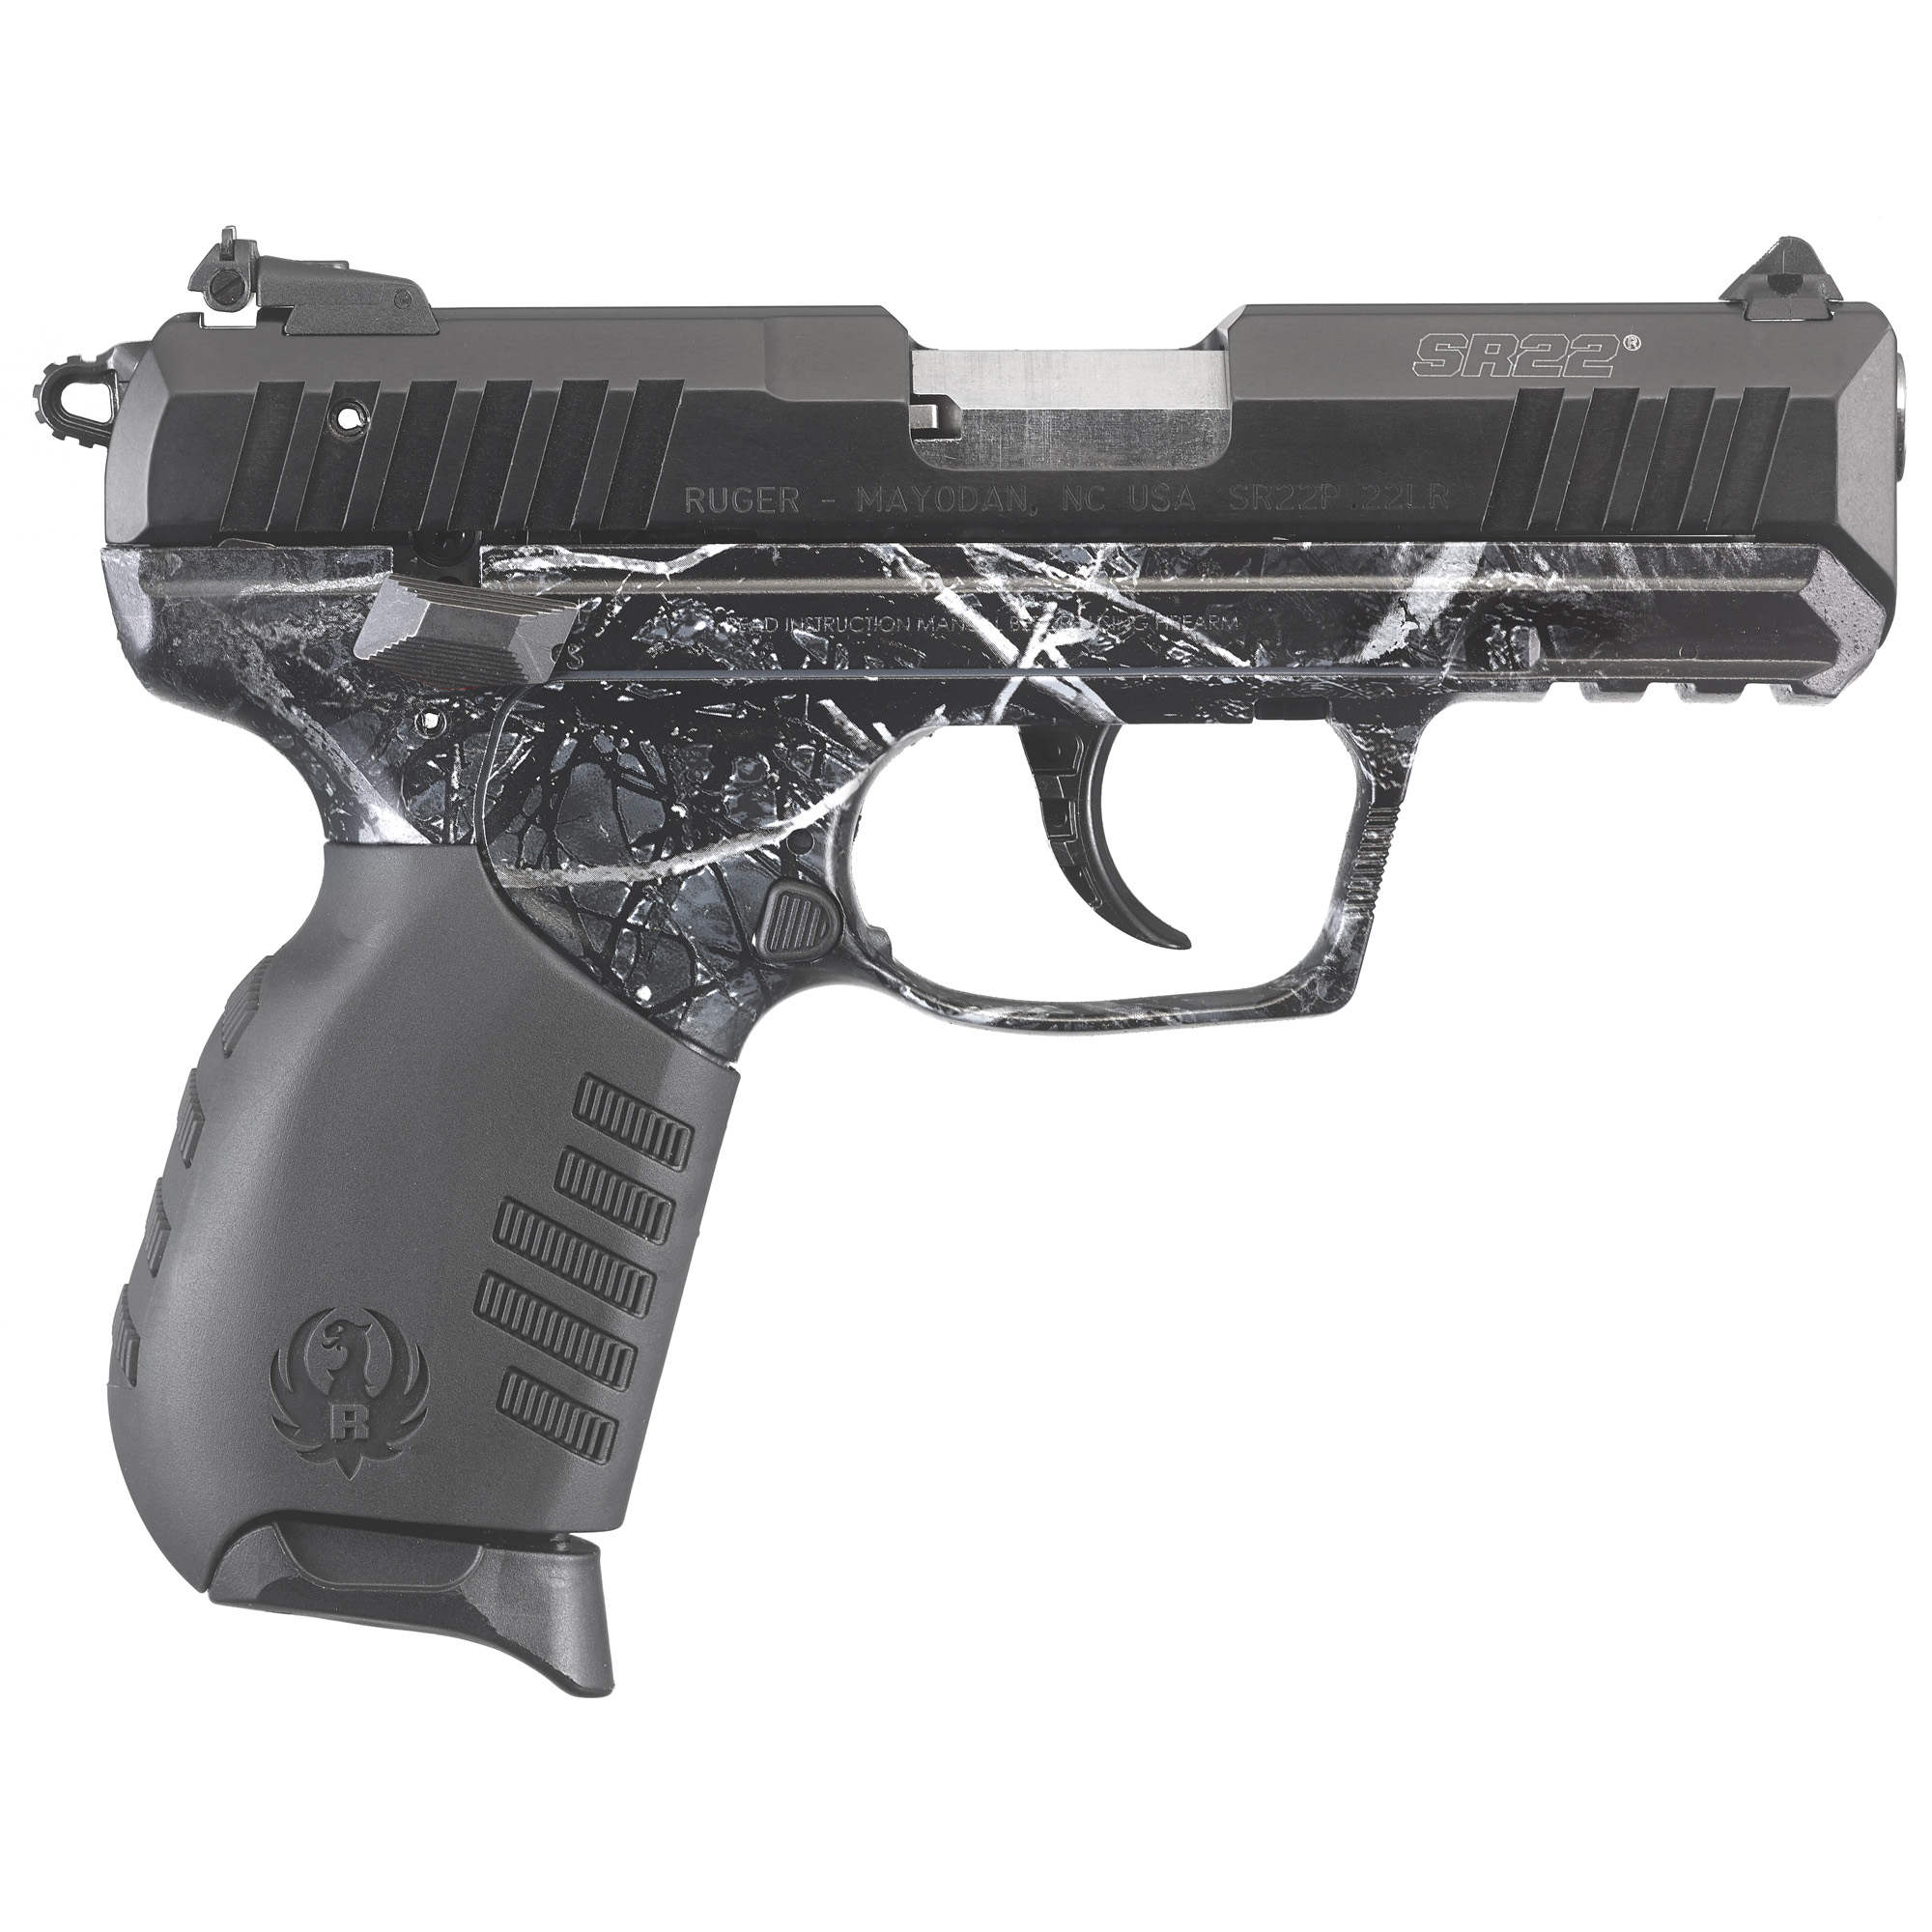 """Packed with versatile features"""" the SR22 is lightweight (only 17.5 ounces) and perfect for just about anything - plinking"""" target shooting and even small game hunting. It is easy to field strip"""" fun to shoot"""" and will run reliably with a wide variety of ammunition (not just high-velocity ammunition). The SR22 has light double-action and crisp single-action trigger pulls. Its external hammer is designed with a rounded spur for easy cocking and single-action shooting. The SR22 features a polymer frame and two interchangeable rubberized grips with angled serrations"""" allowing shooters to select either a slim or wider palm swell option. The aerospace-grade aluminum slide has serrations on both front and rear for better grip and slide manipulation. The easy-to-use underside Picatinny rail features multiple cross slots for variable mounting of most popular accessories. The 3-dot sight system has a fixed front sight and a rear sight that is adjustable for both windage and elevation. A reversible blade allows shooters to select two white dots or a solid black blade. Other SR22 features include a stainless steel replaceable barrel"""" an ambidextrous manual thumb safety/decocking lever"""" ambidextrous magazine release"""" plus a visual inspection port to determine the load status of the pistol. The SR22 includes two finger grip extension floorplates that can be added to the magazine for comfort and grip and two 10-round magazines."""